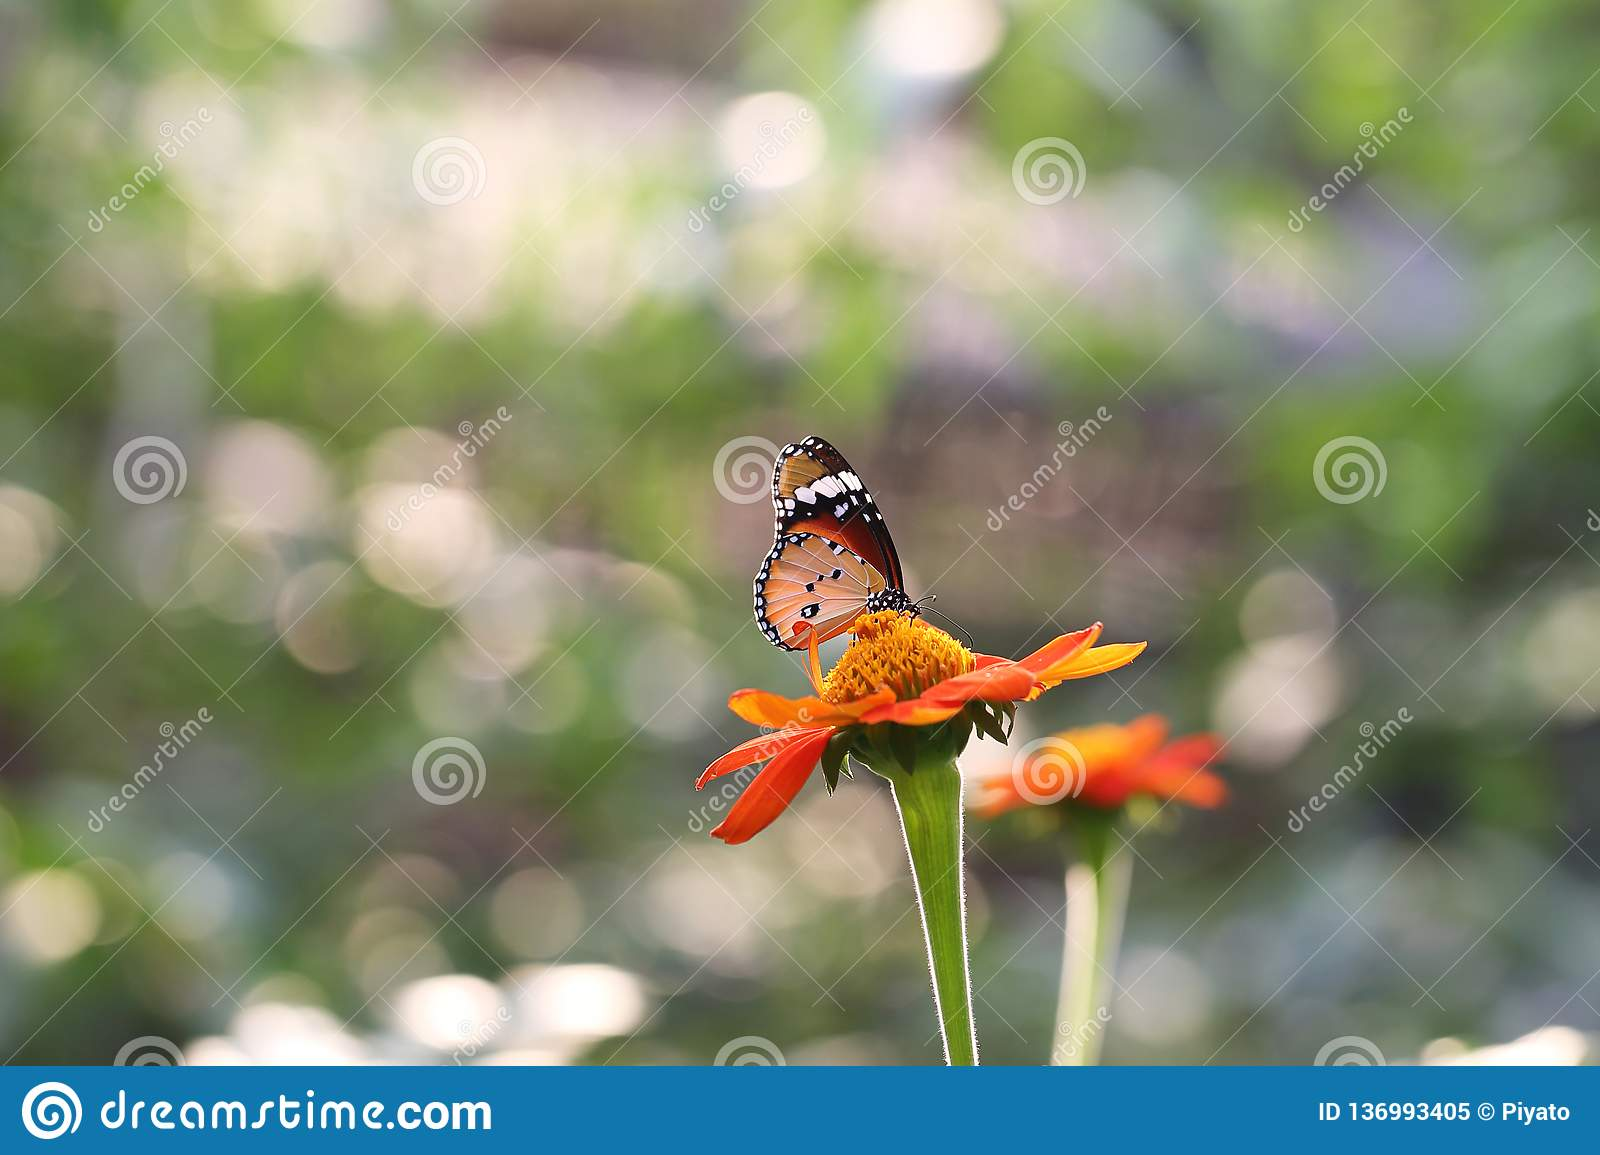 Butterfly fly in morning nature royalty free stock photo